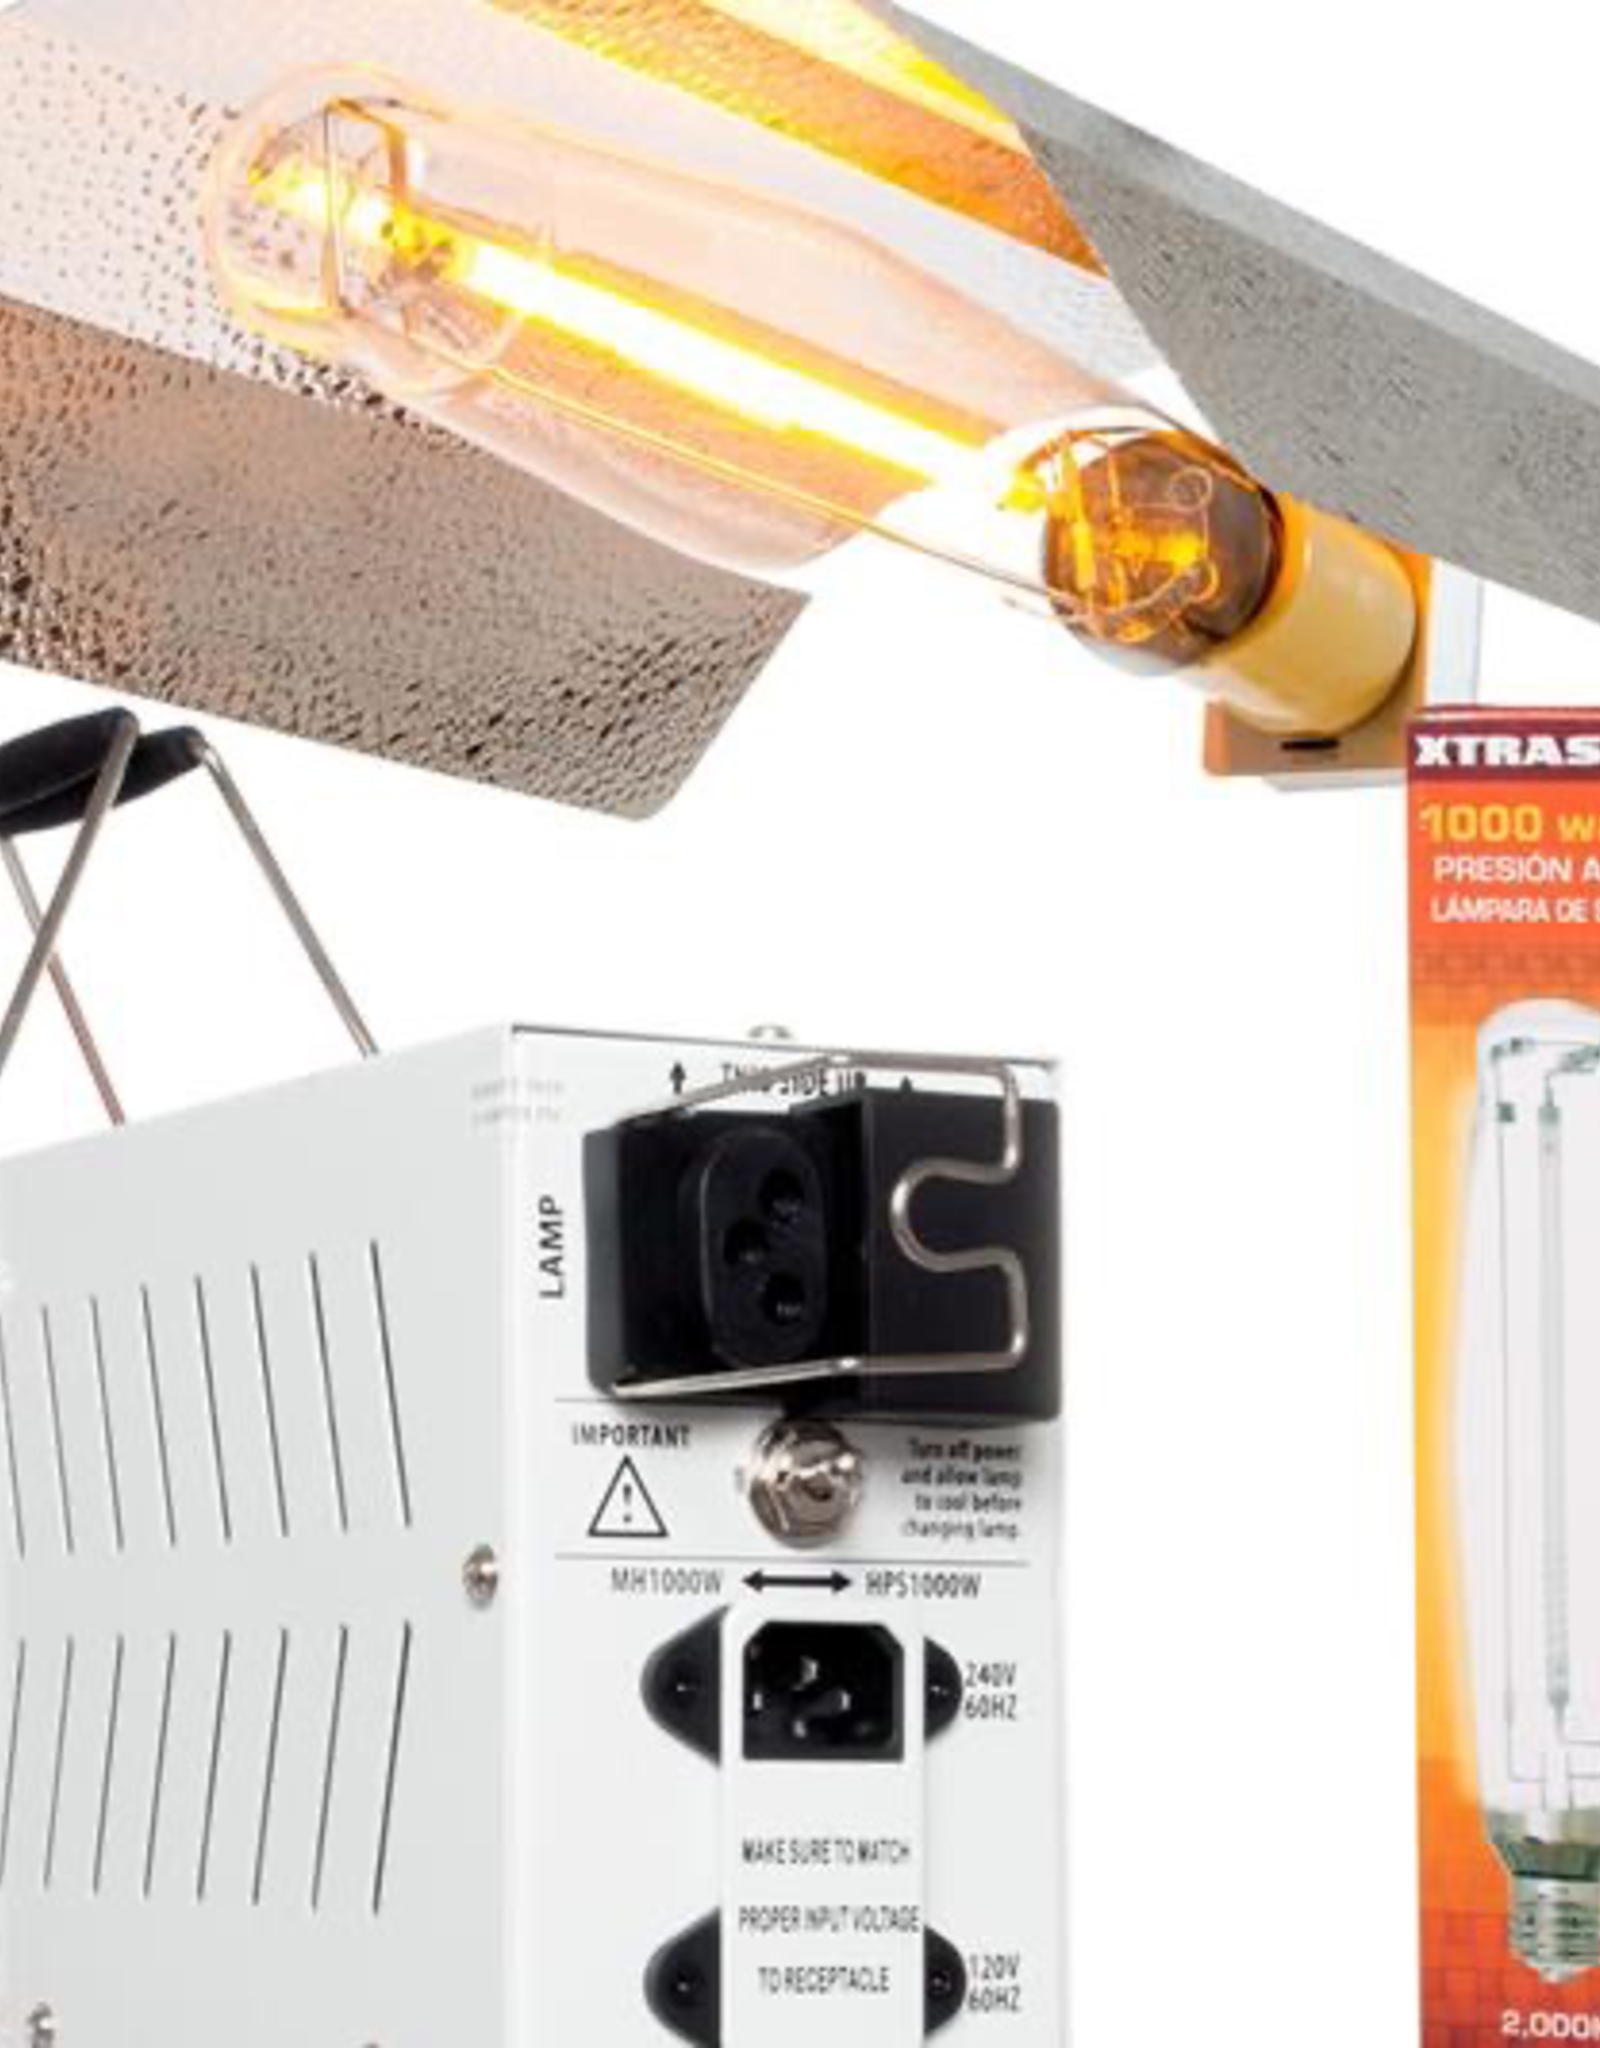 XTRASUN Product Details<br /> If you're looking for a quality HPS system at a very affordable price, this Xtrasun kit fits the bill very nicely. It combines the Xtrasun II Aluminum Wing Reflector with our SG 1000W 120V/240V convertible ballast and an Xtrasun 1000W HPS